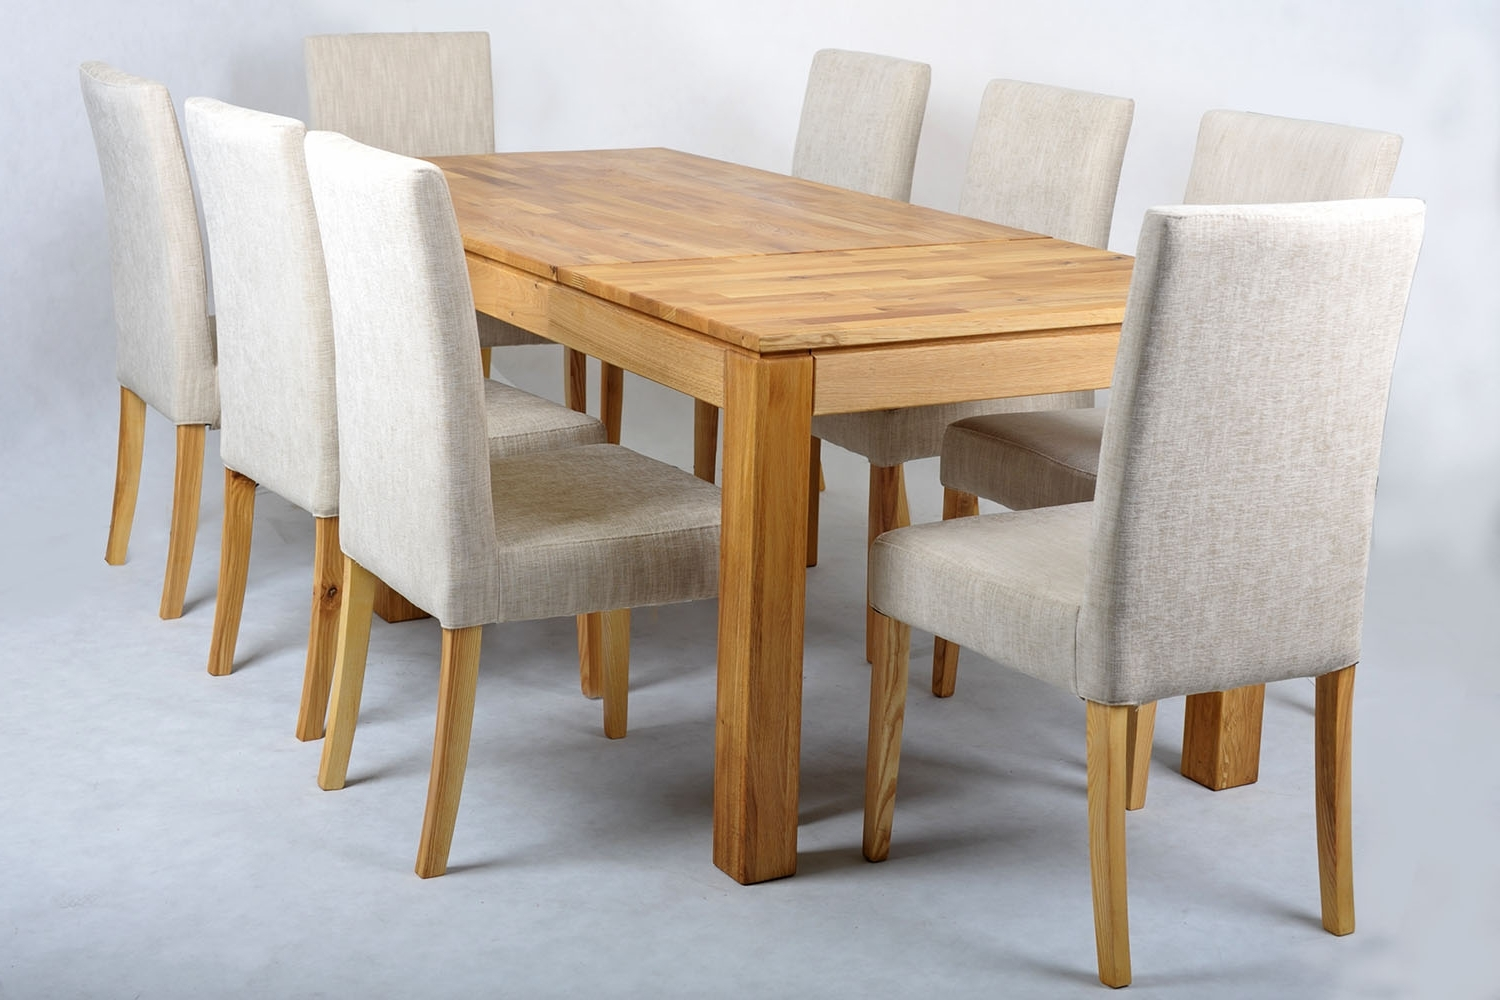 58 Extended Dining Table Sets, Townhouse Oval Dark Wood Extending Within Recent Extendable Dining Tables With 8 Seats (Gallery 1 of 25)